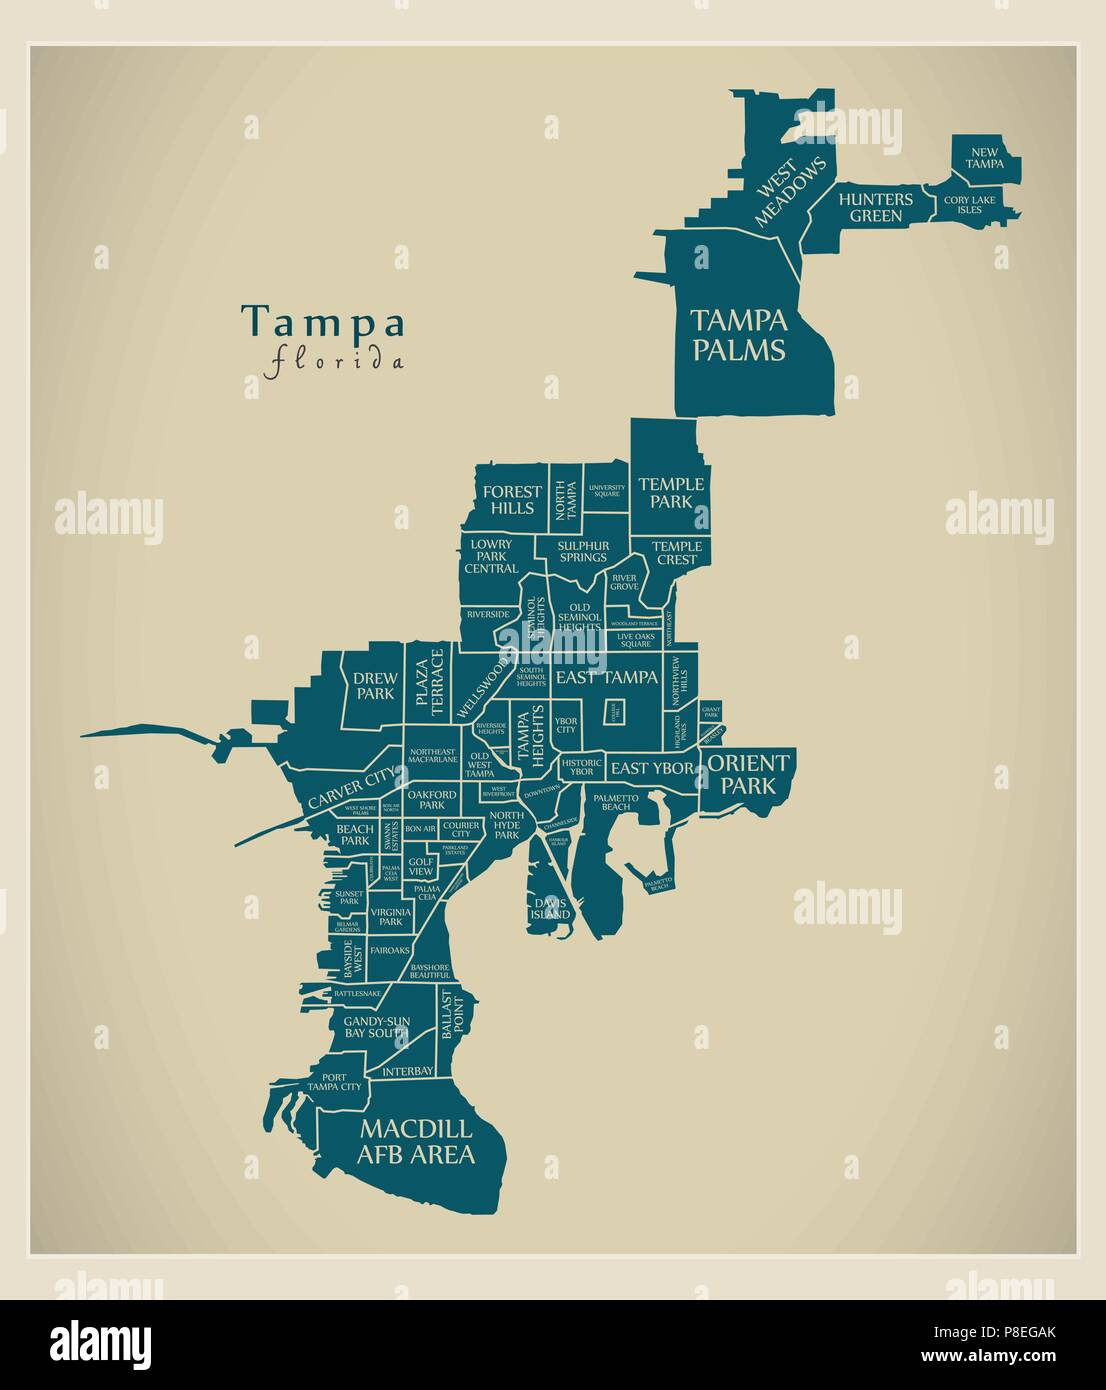 Florida City Map.Modern City Map Tampa Florida City Of The Usa With Neighborhoods